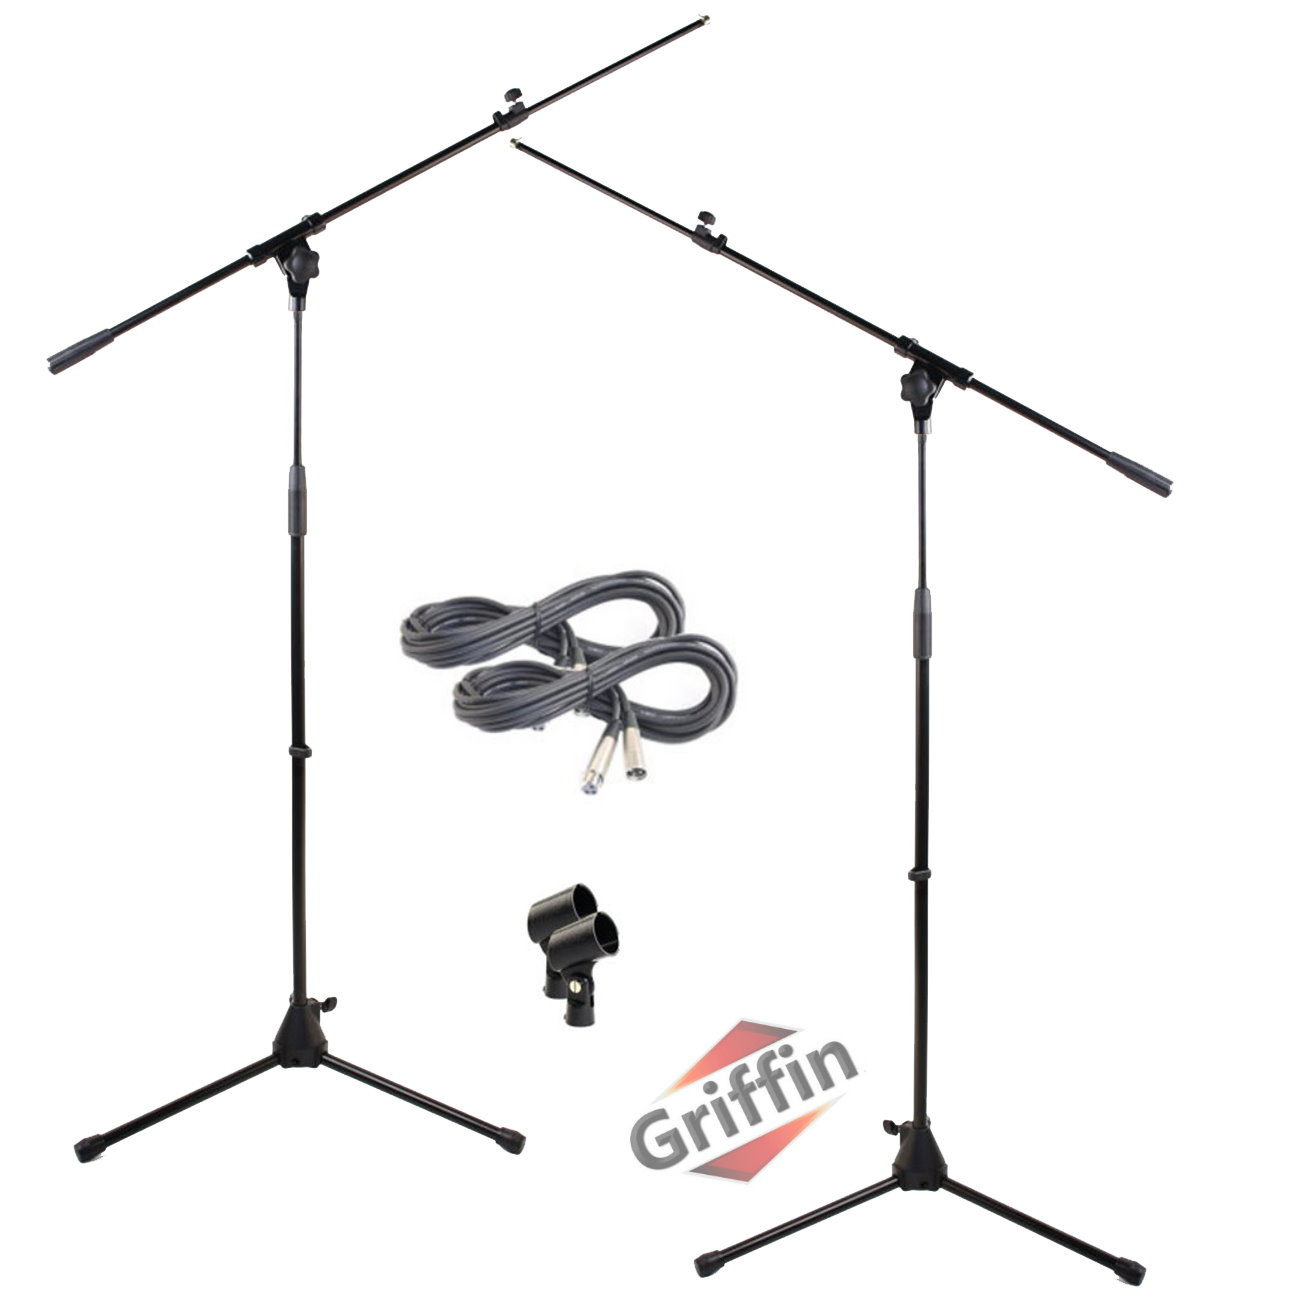 Microphone Boom Stands with Microphone XLR Cables & Mic Clips 2 Pack by Griffin